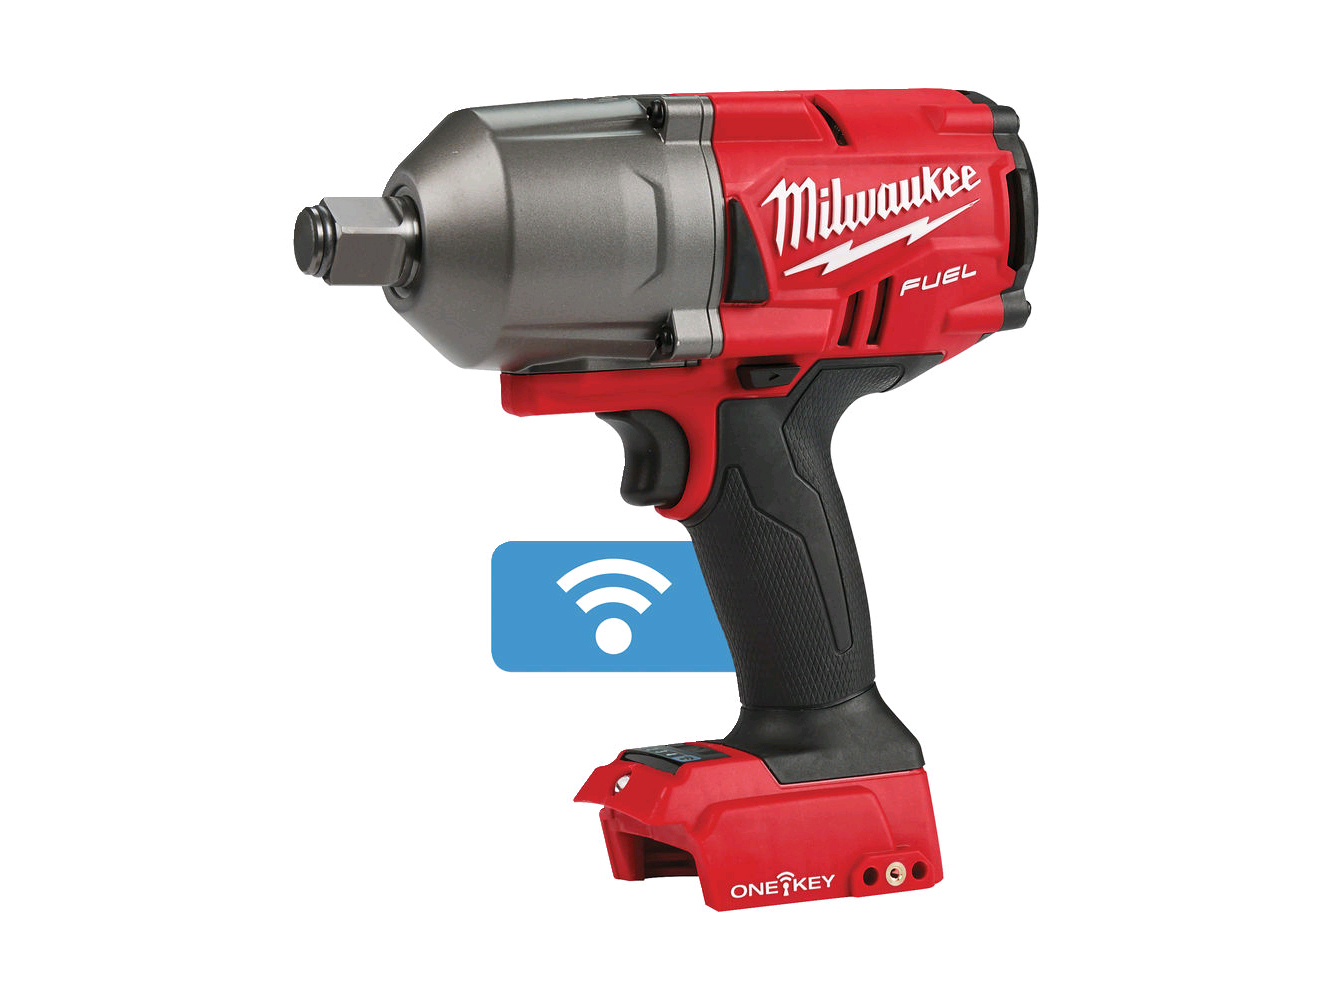 Milwaukee M18ONEFHIWF34 One-Key 18V 3/4In High Torque Wrench - Body Only